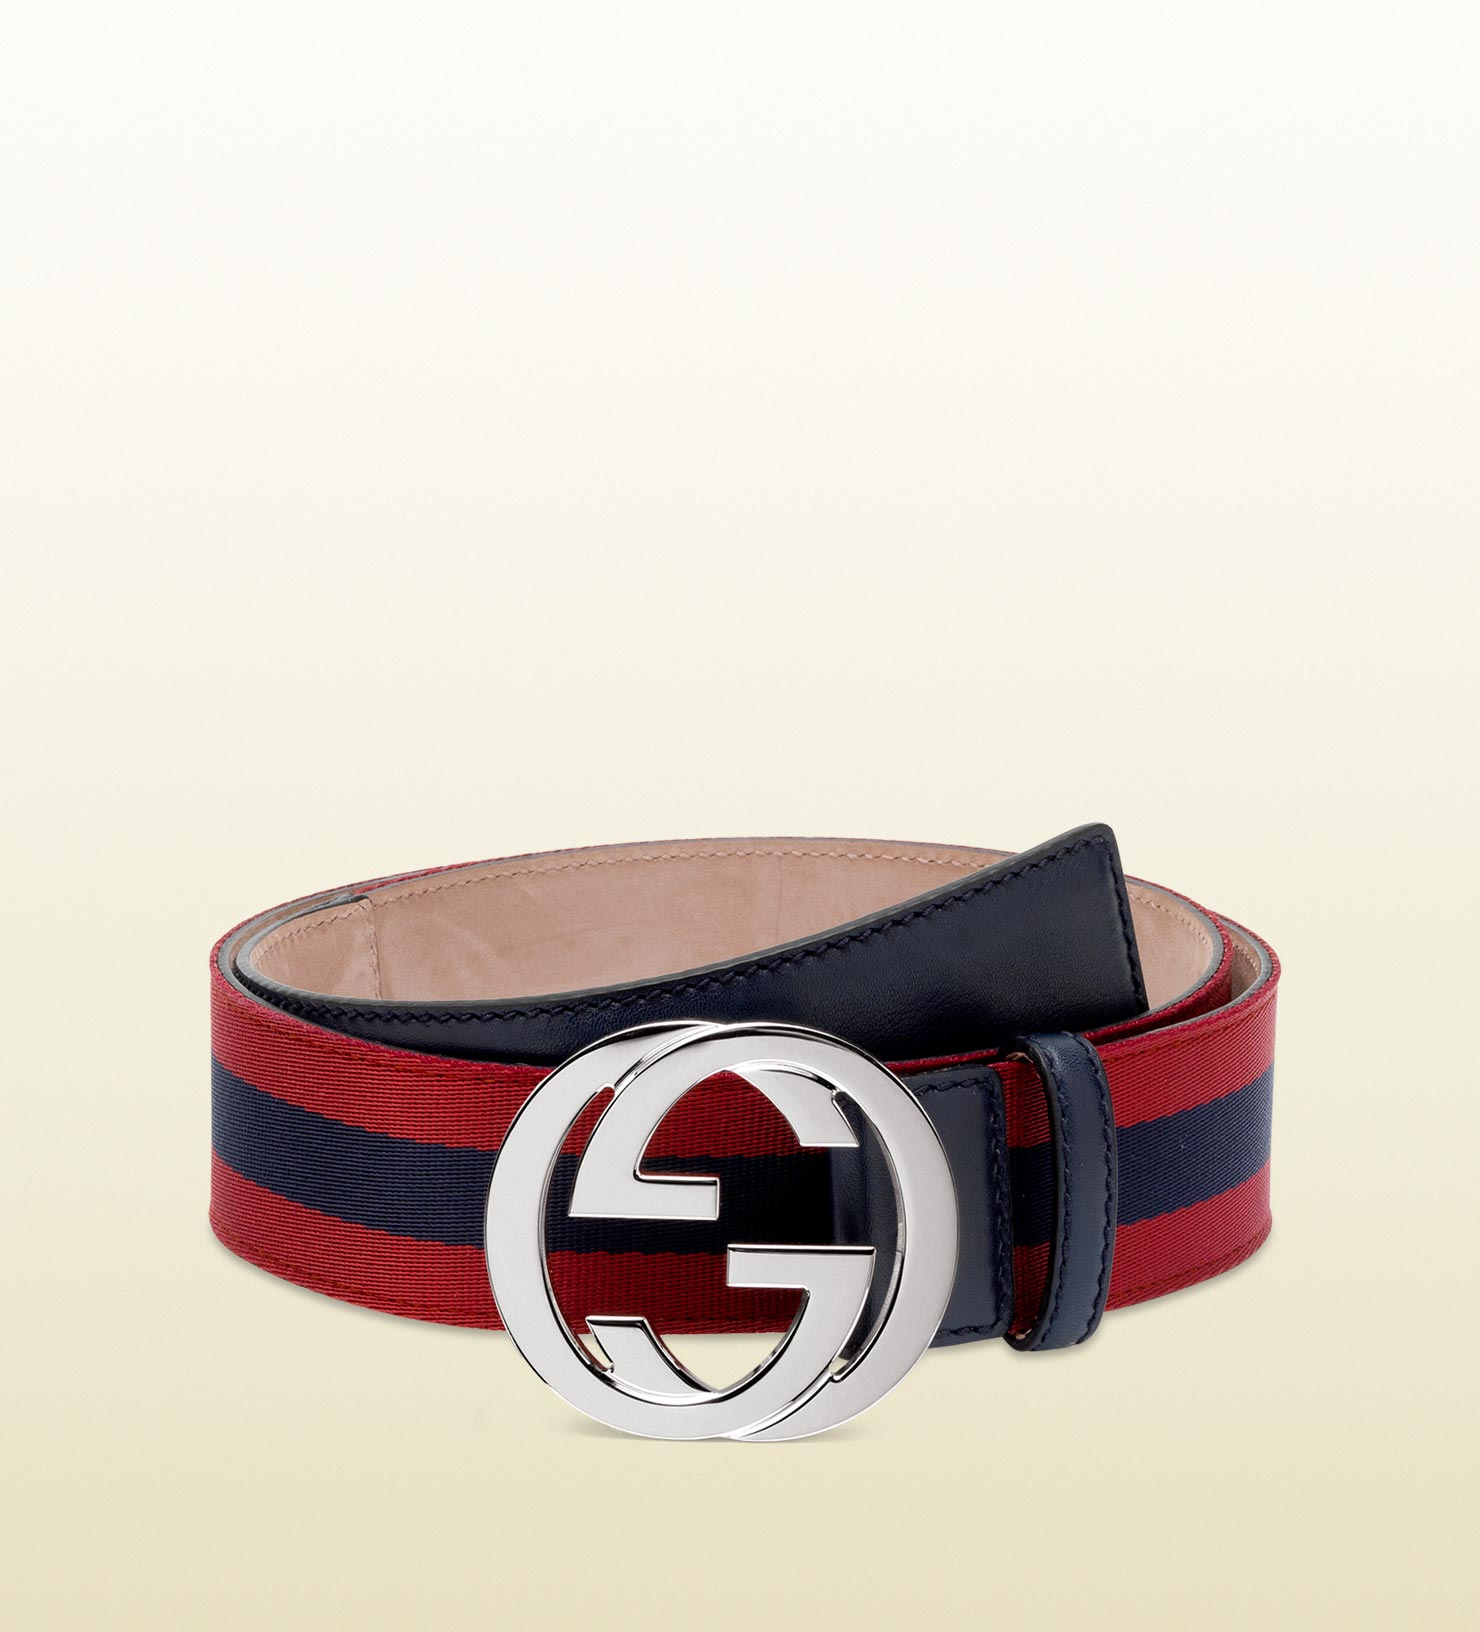 Lyst - Gucci Belt with Interlocking G Buckle in Blue for Men